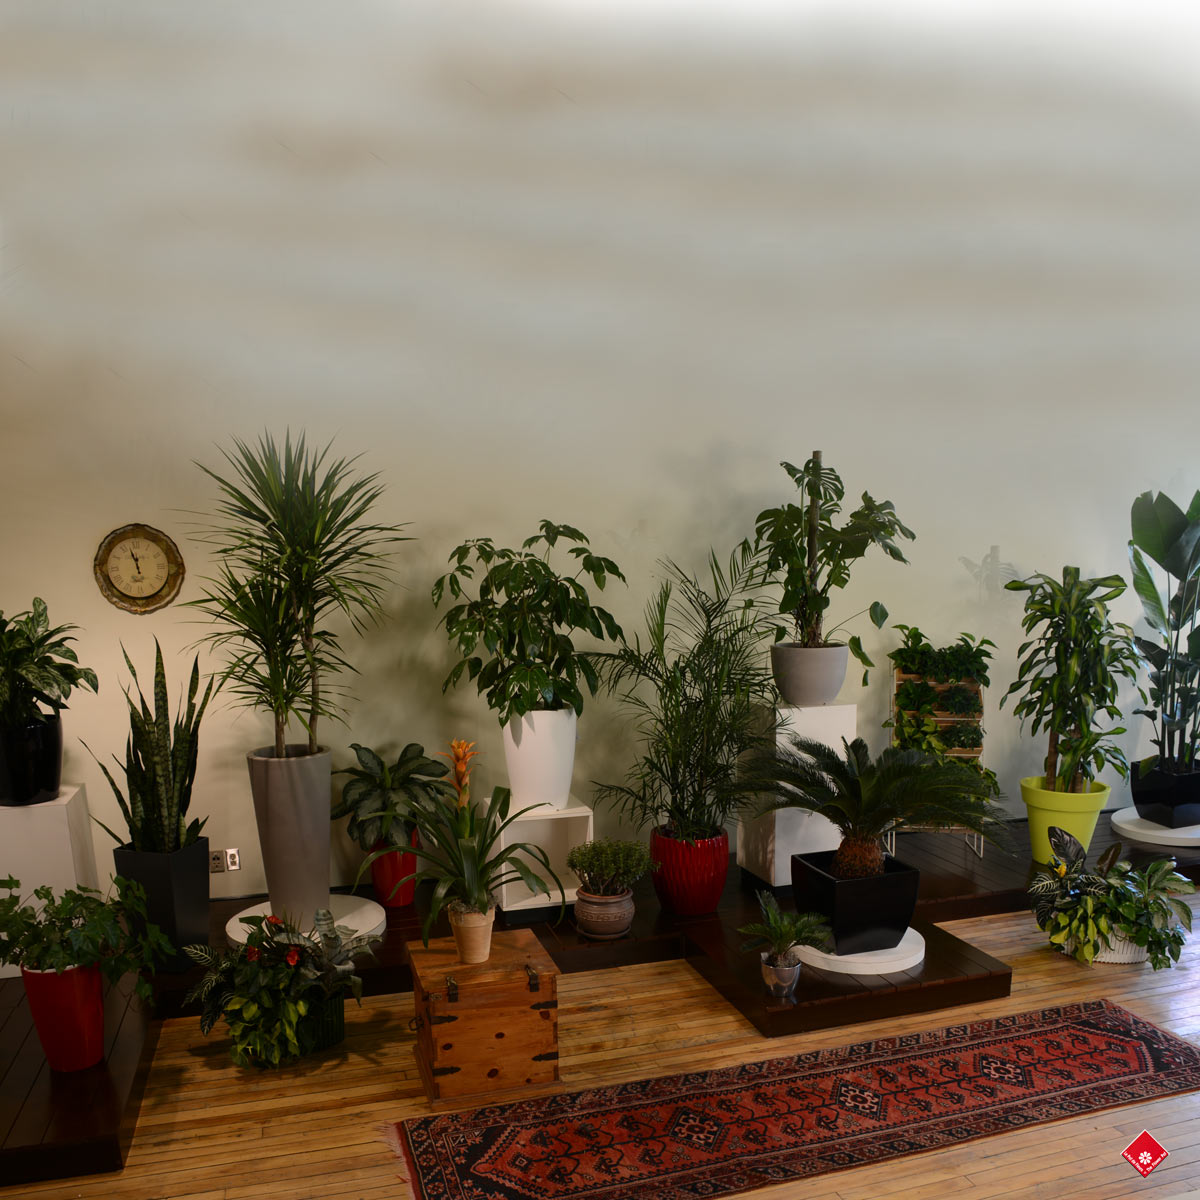 0 salon vert plantes for Plante pour salon